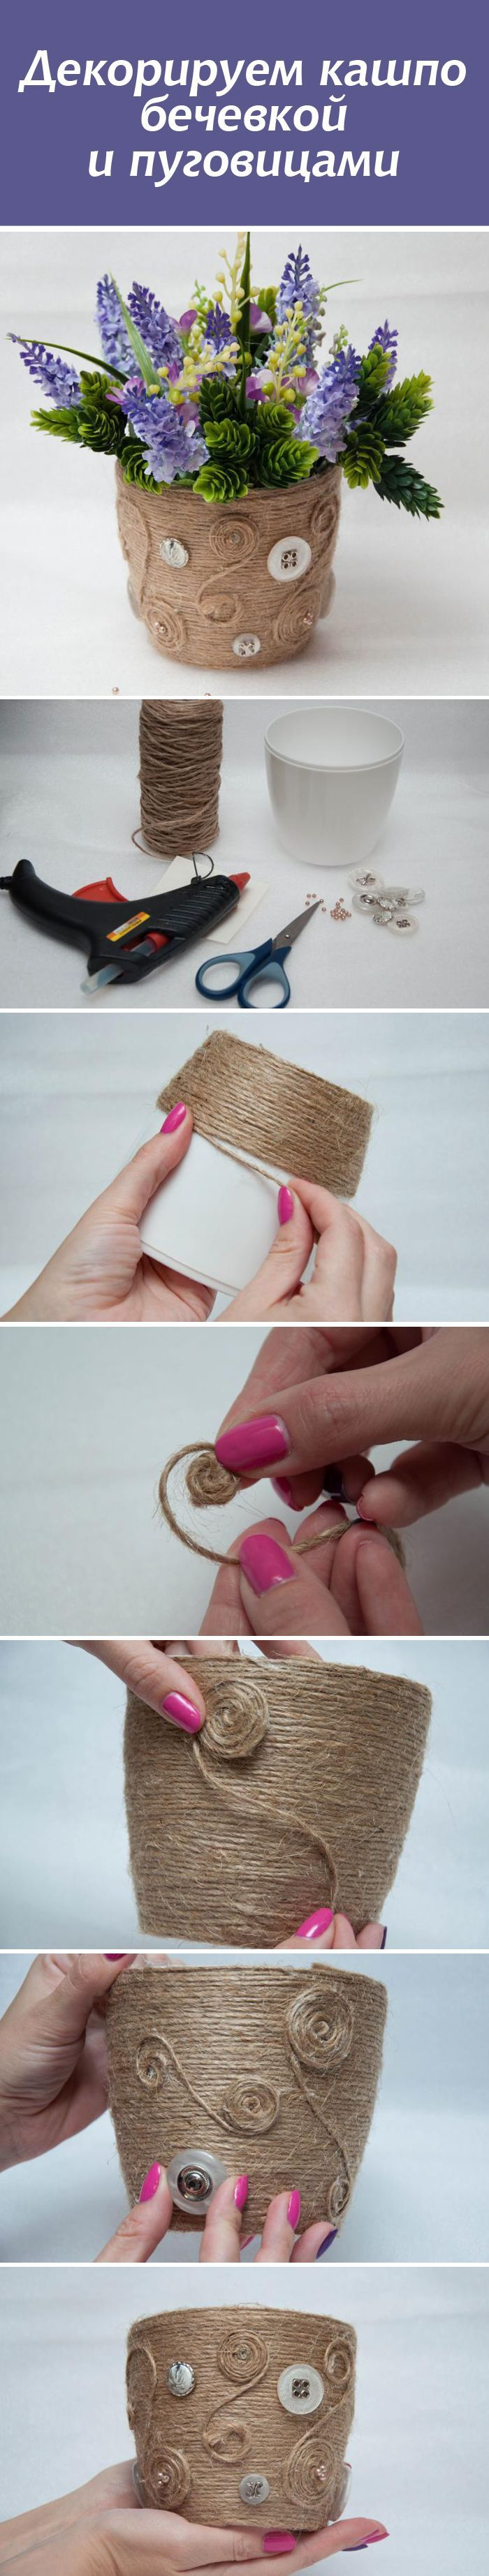 Master class: the transformation of plant pots Decorate flower pots with string and buttons #diy #diyproject #tutorial